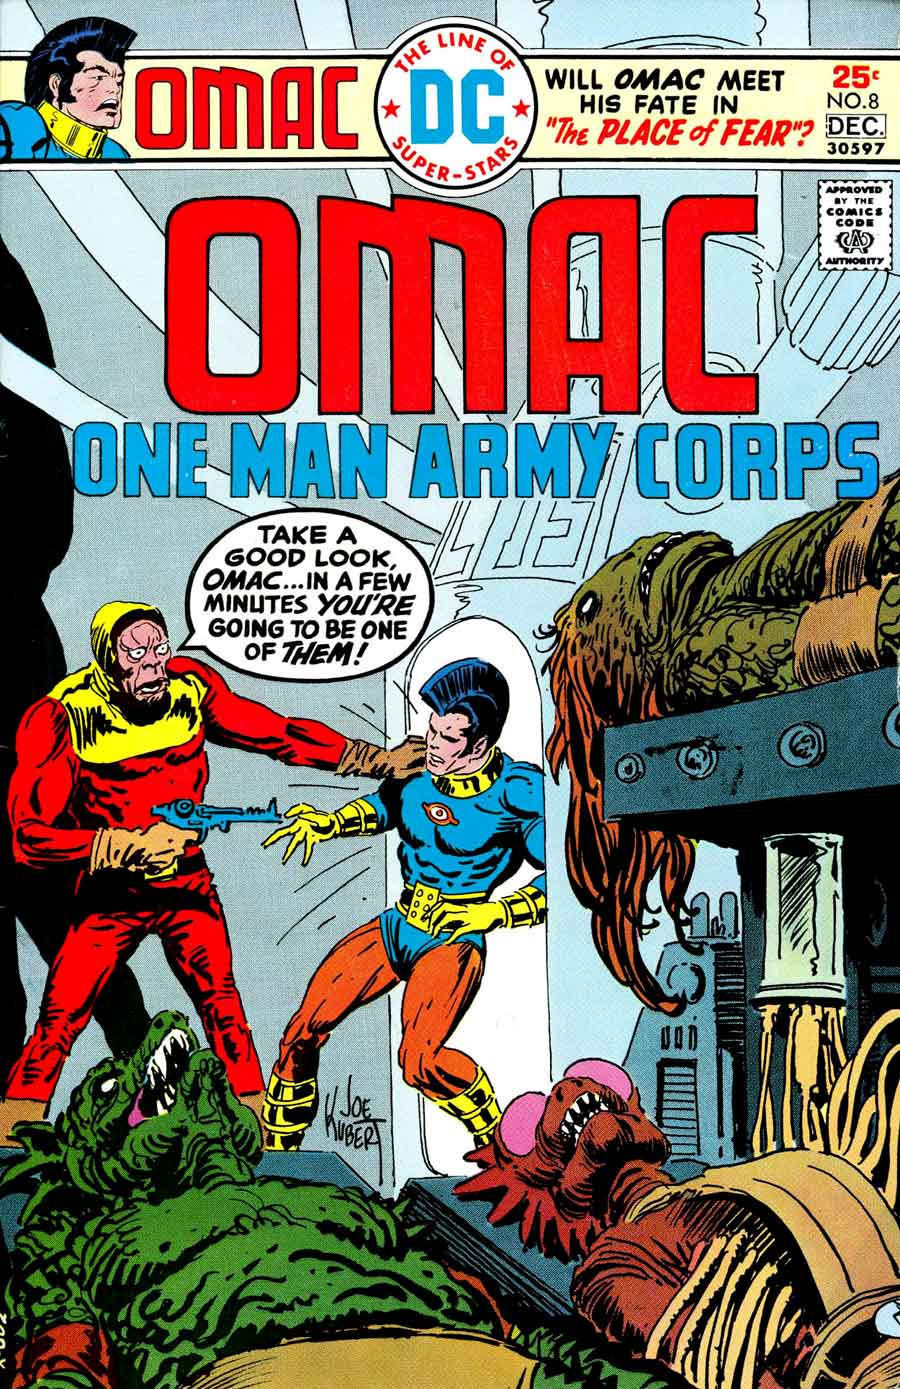 Omac v1 #8 dc bronze age comic book cover art by Joe Kubert